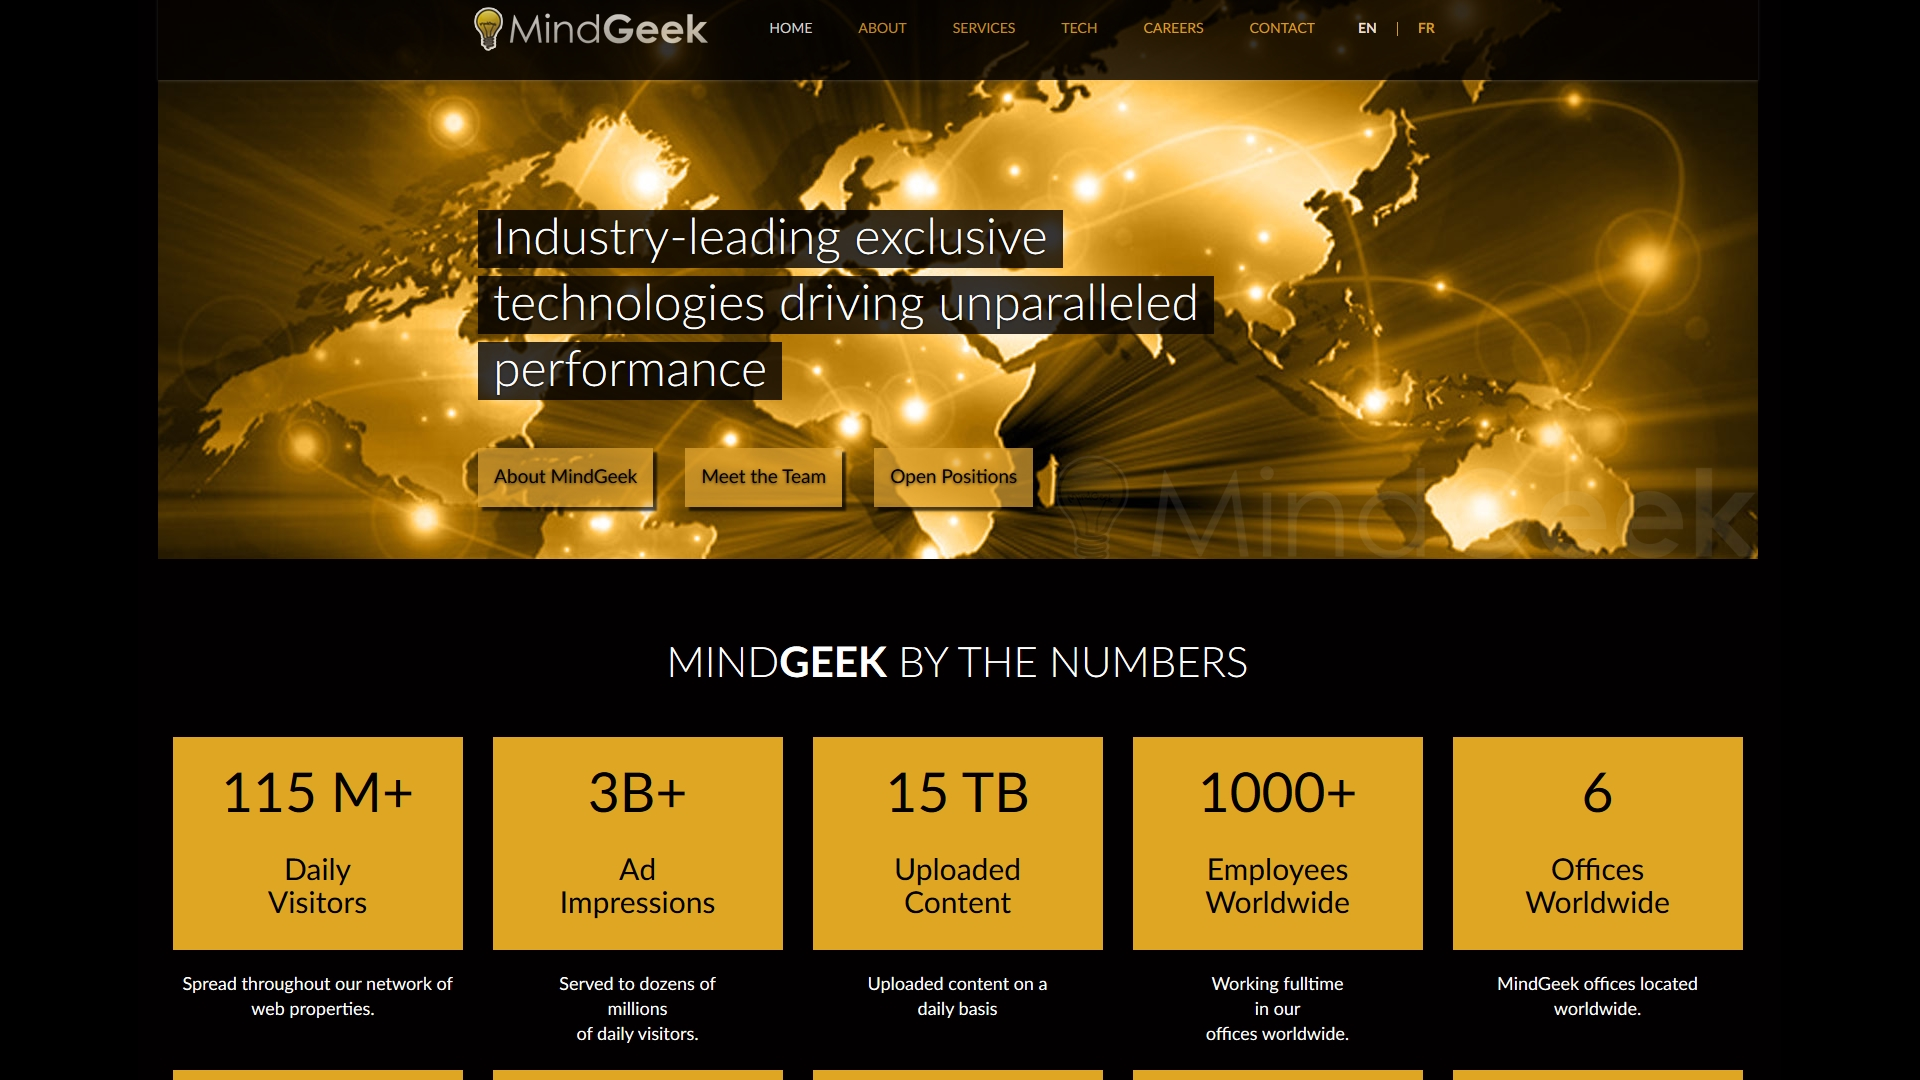 Mindgeek owns the internet's biggest porn sites including PornHub, RedTube and YouPorn